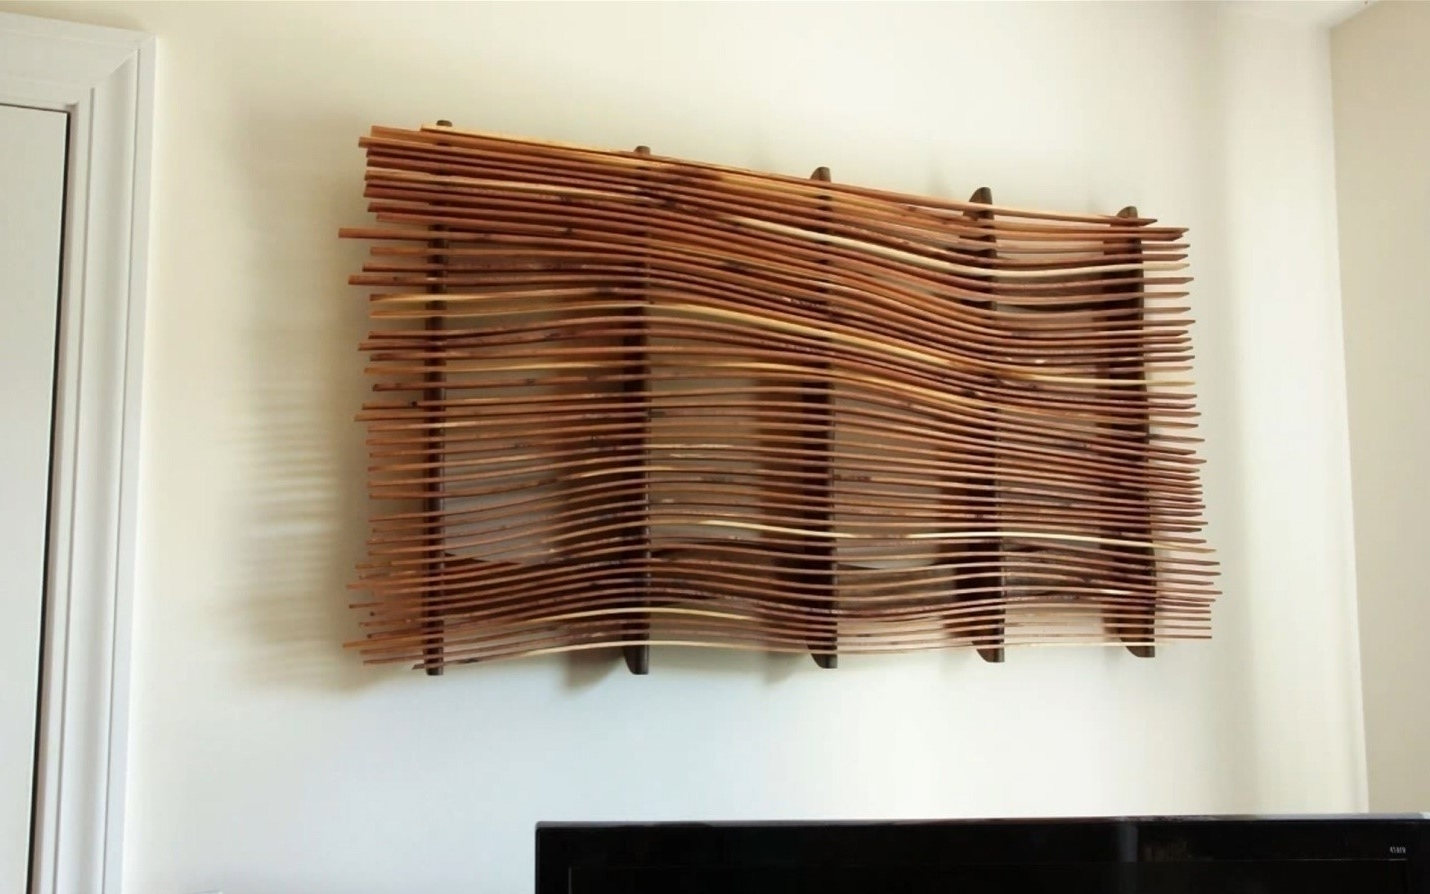 Current Diy Wall Art Projects Pertaining To How To Make Wall Art From Scrap Wood (Gallery 13 of 20)